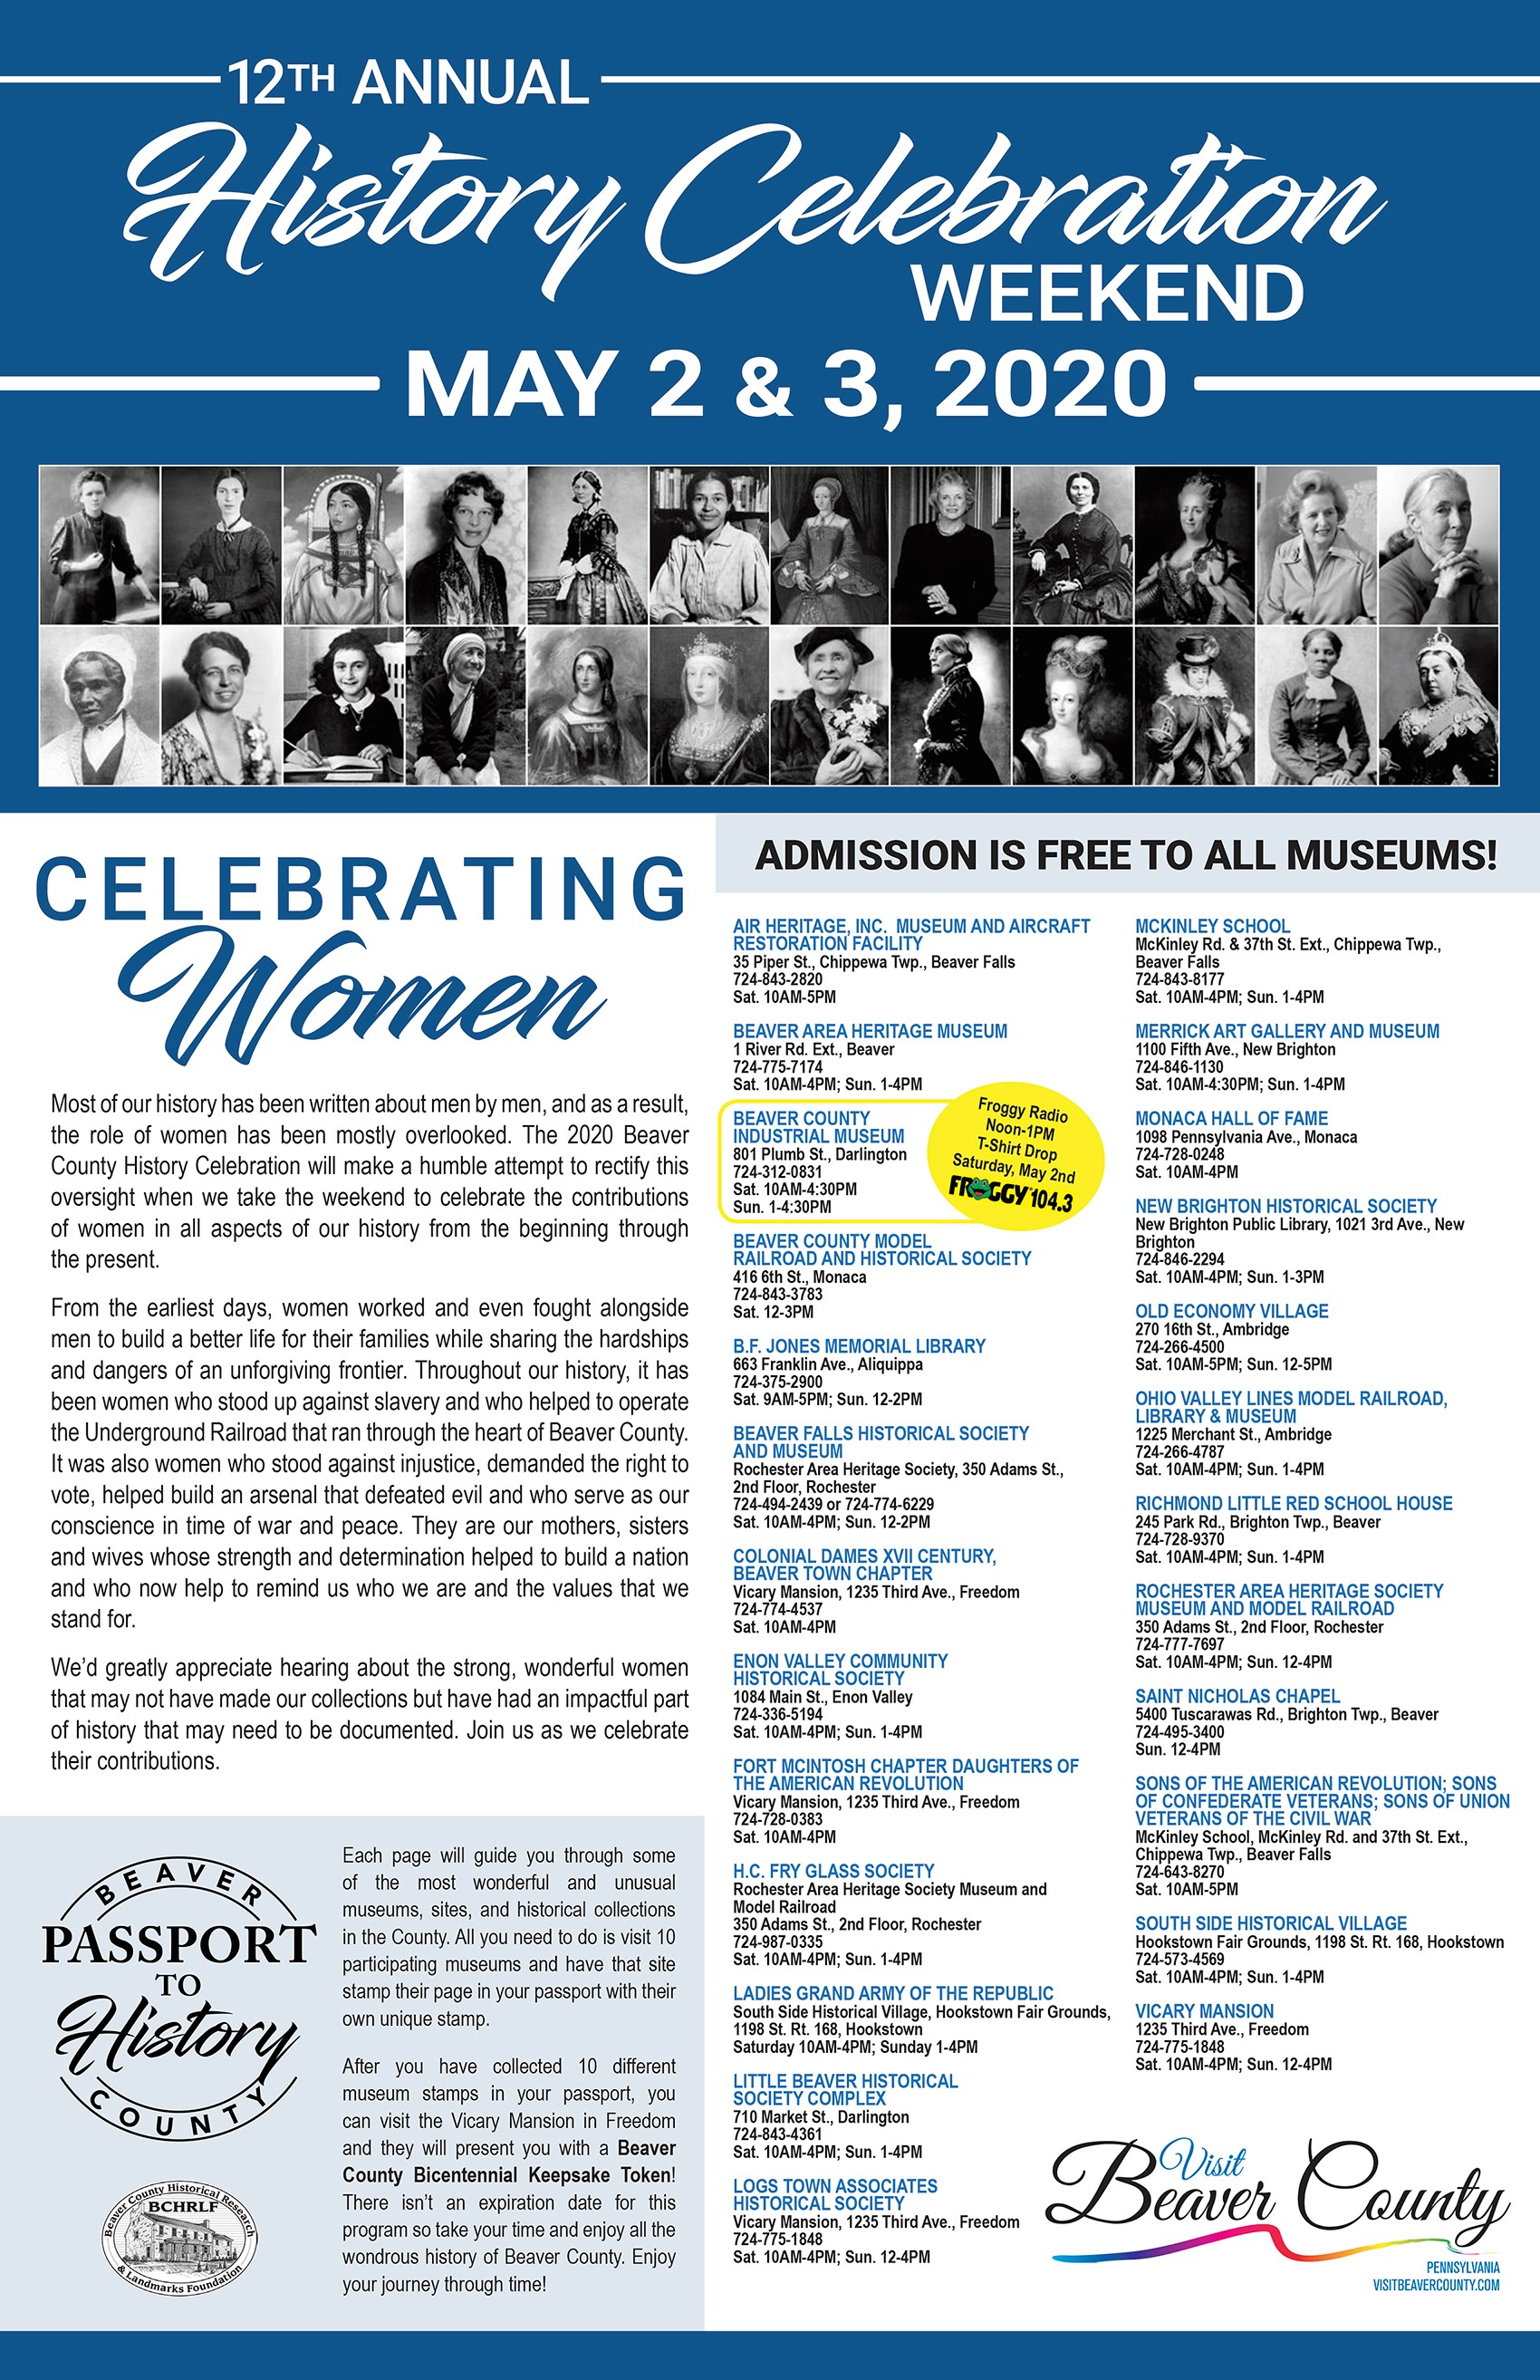 12th Annual History Celebration Weekend